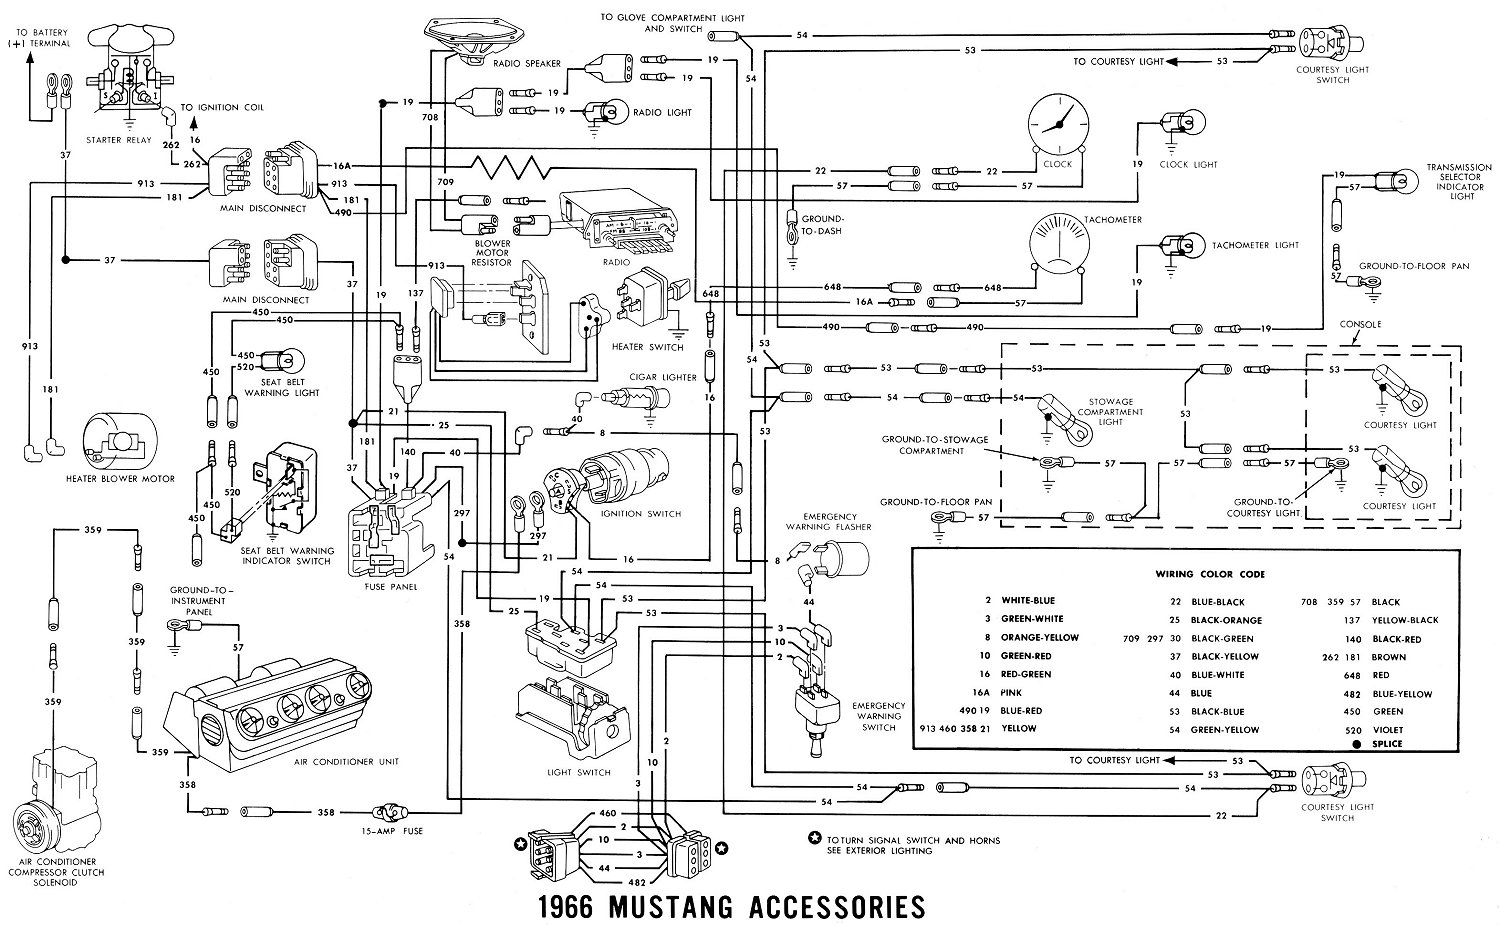 1969 Mustang Dash Wiring Harness Diagram